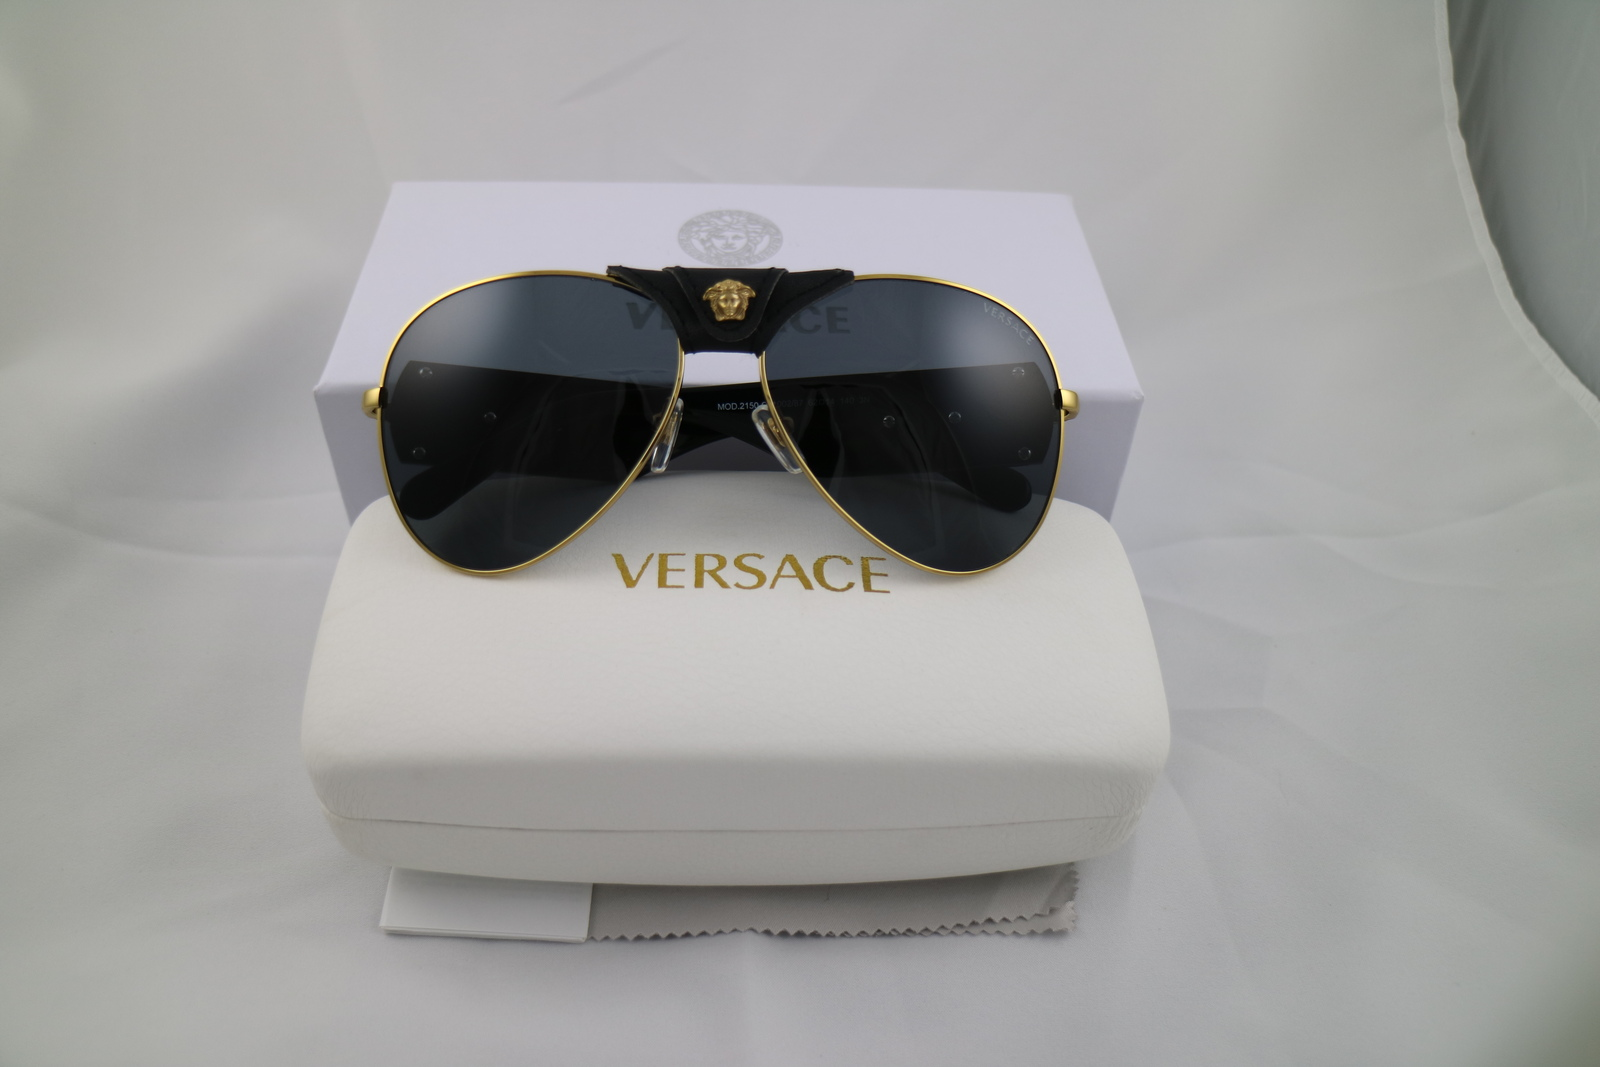 3432cfed4c4af Versace VE2150Q Black Medusa Aviator Sunglasses 100% UV 62mm